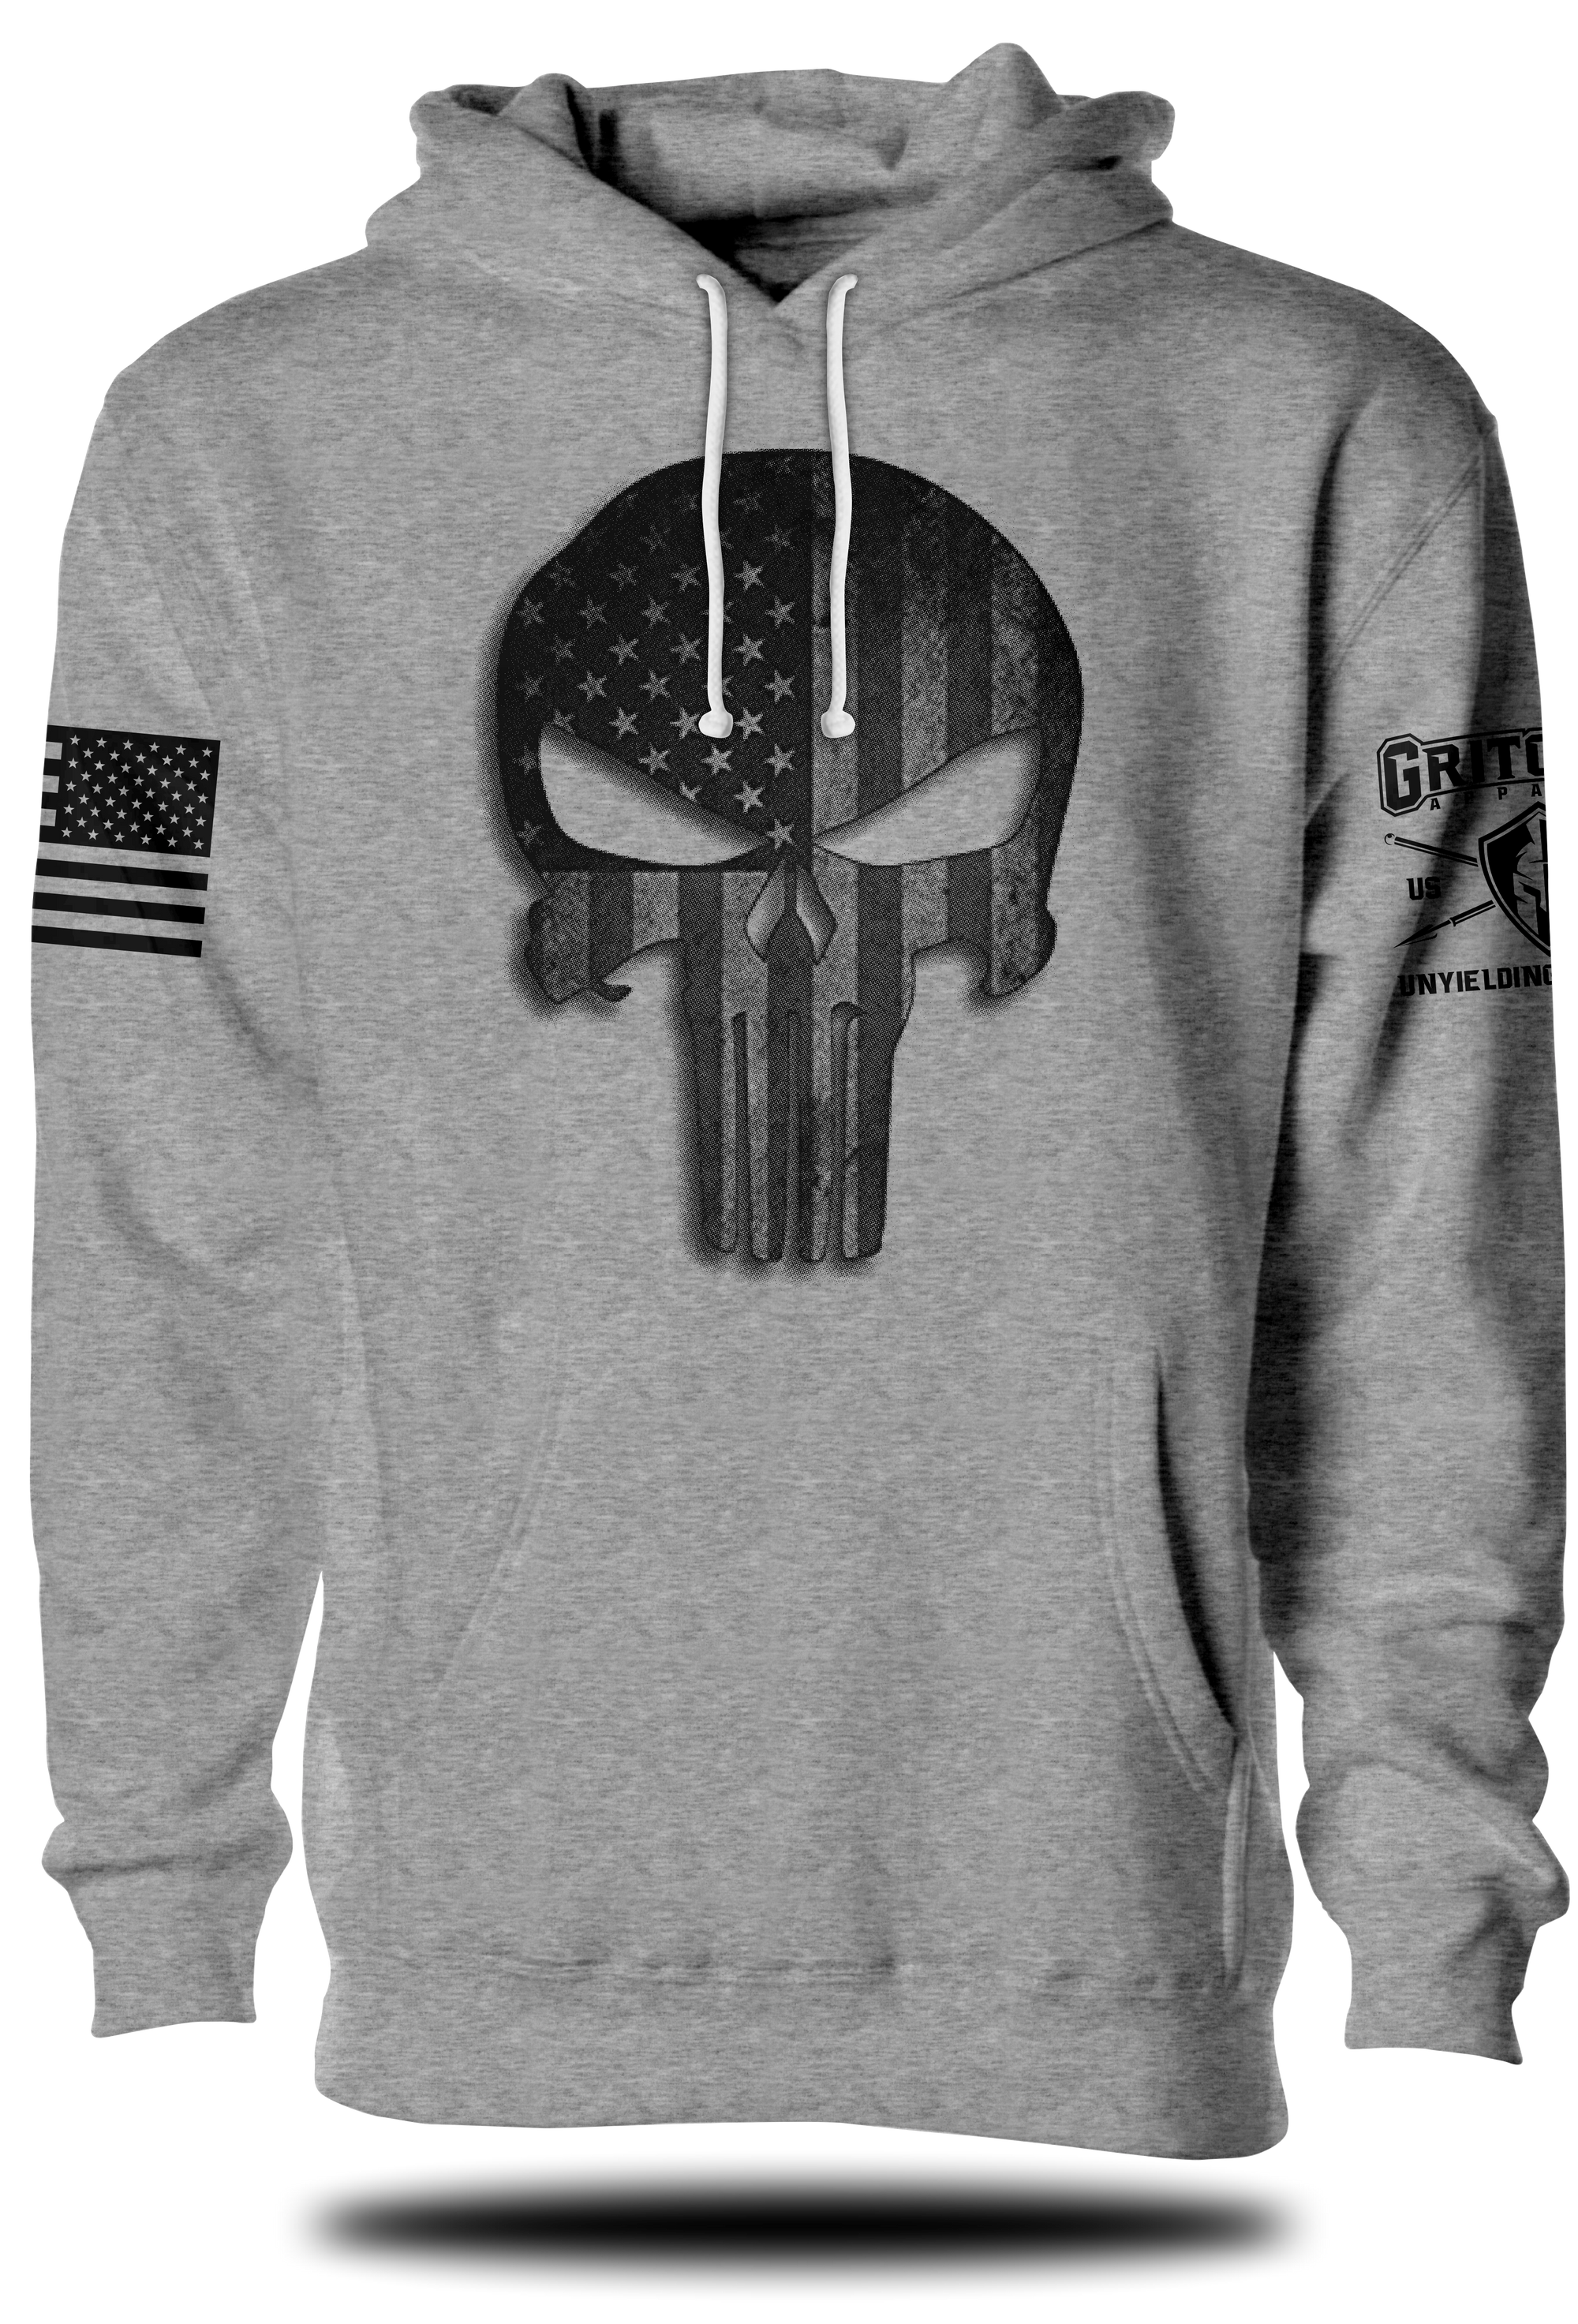 Punisher Stars and Stripes Hoodie | Grit Gear Apparel®